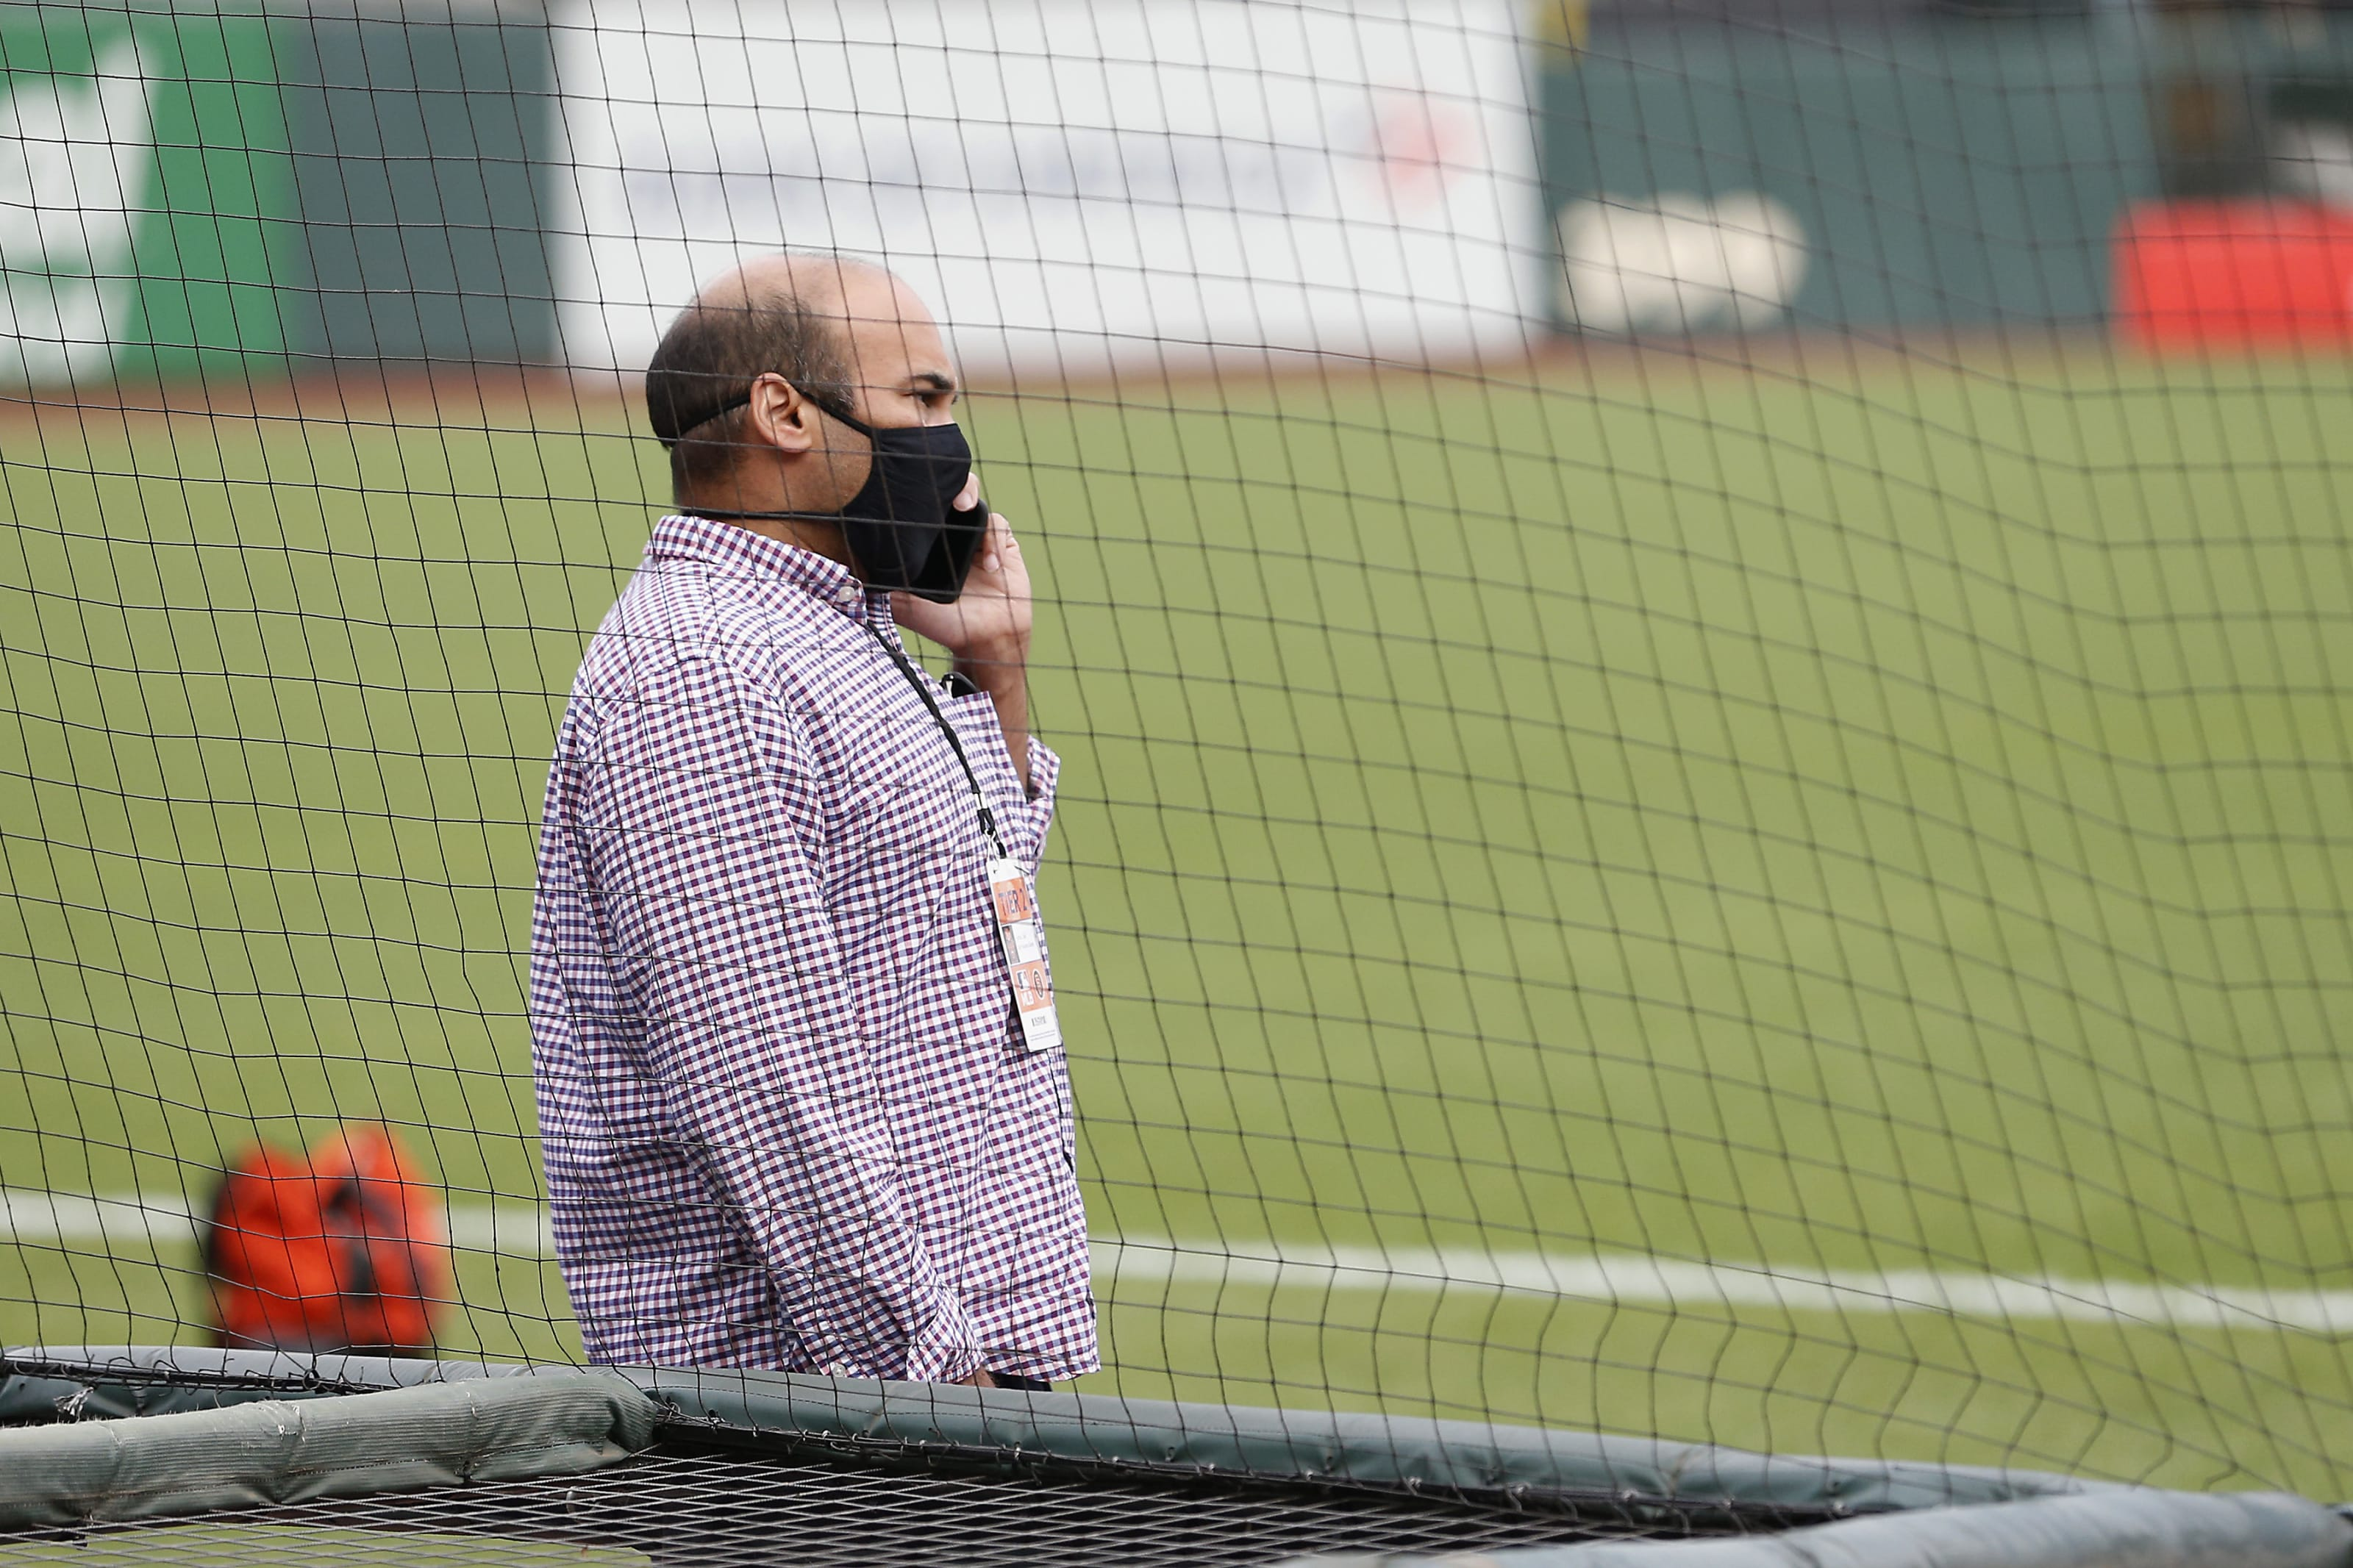 SF Giants, Farhan Zaidi